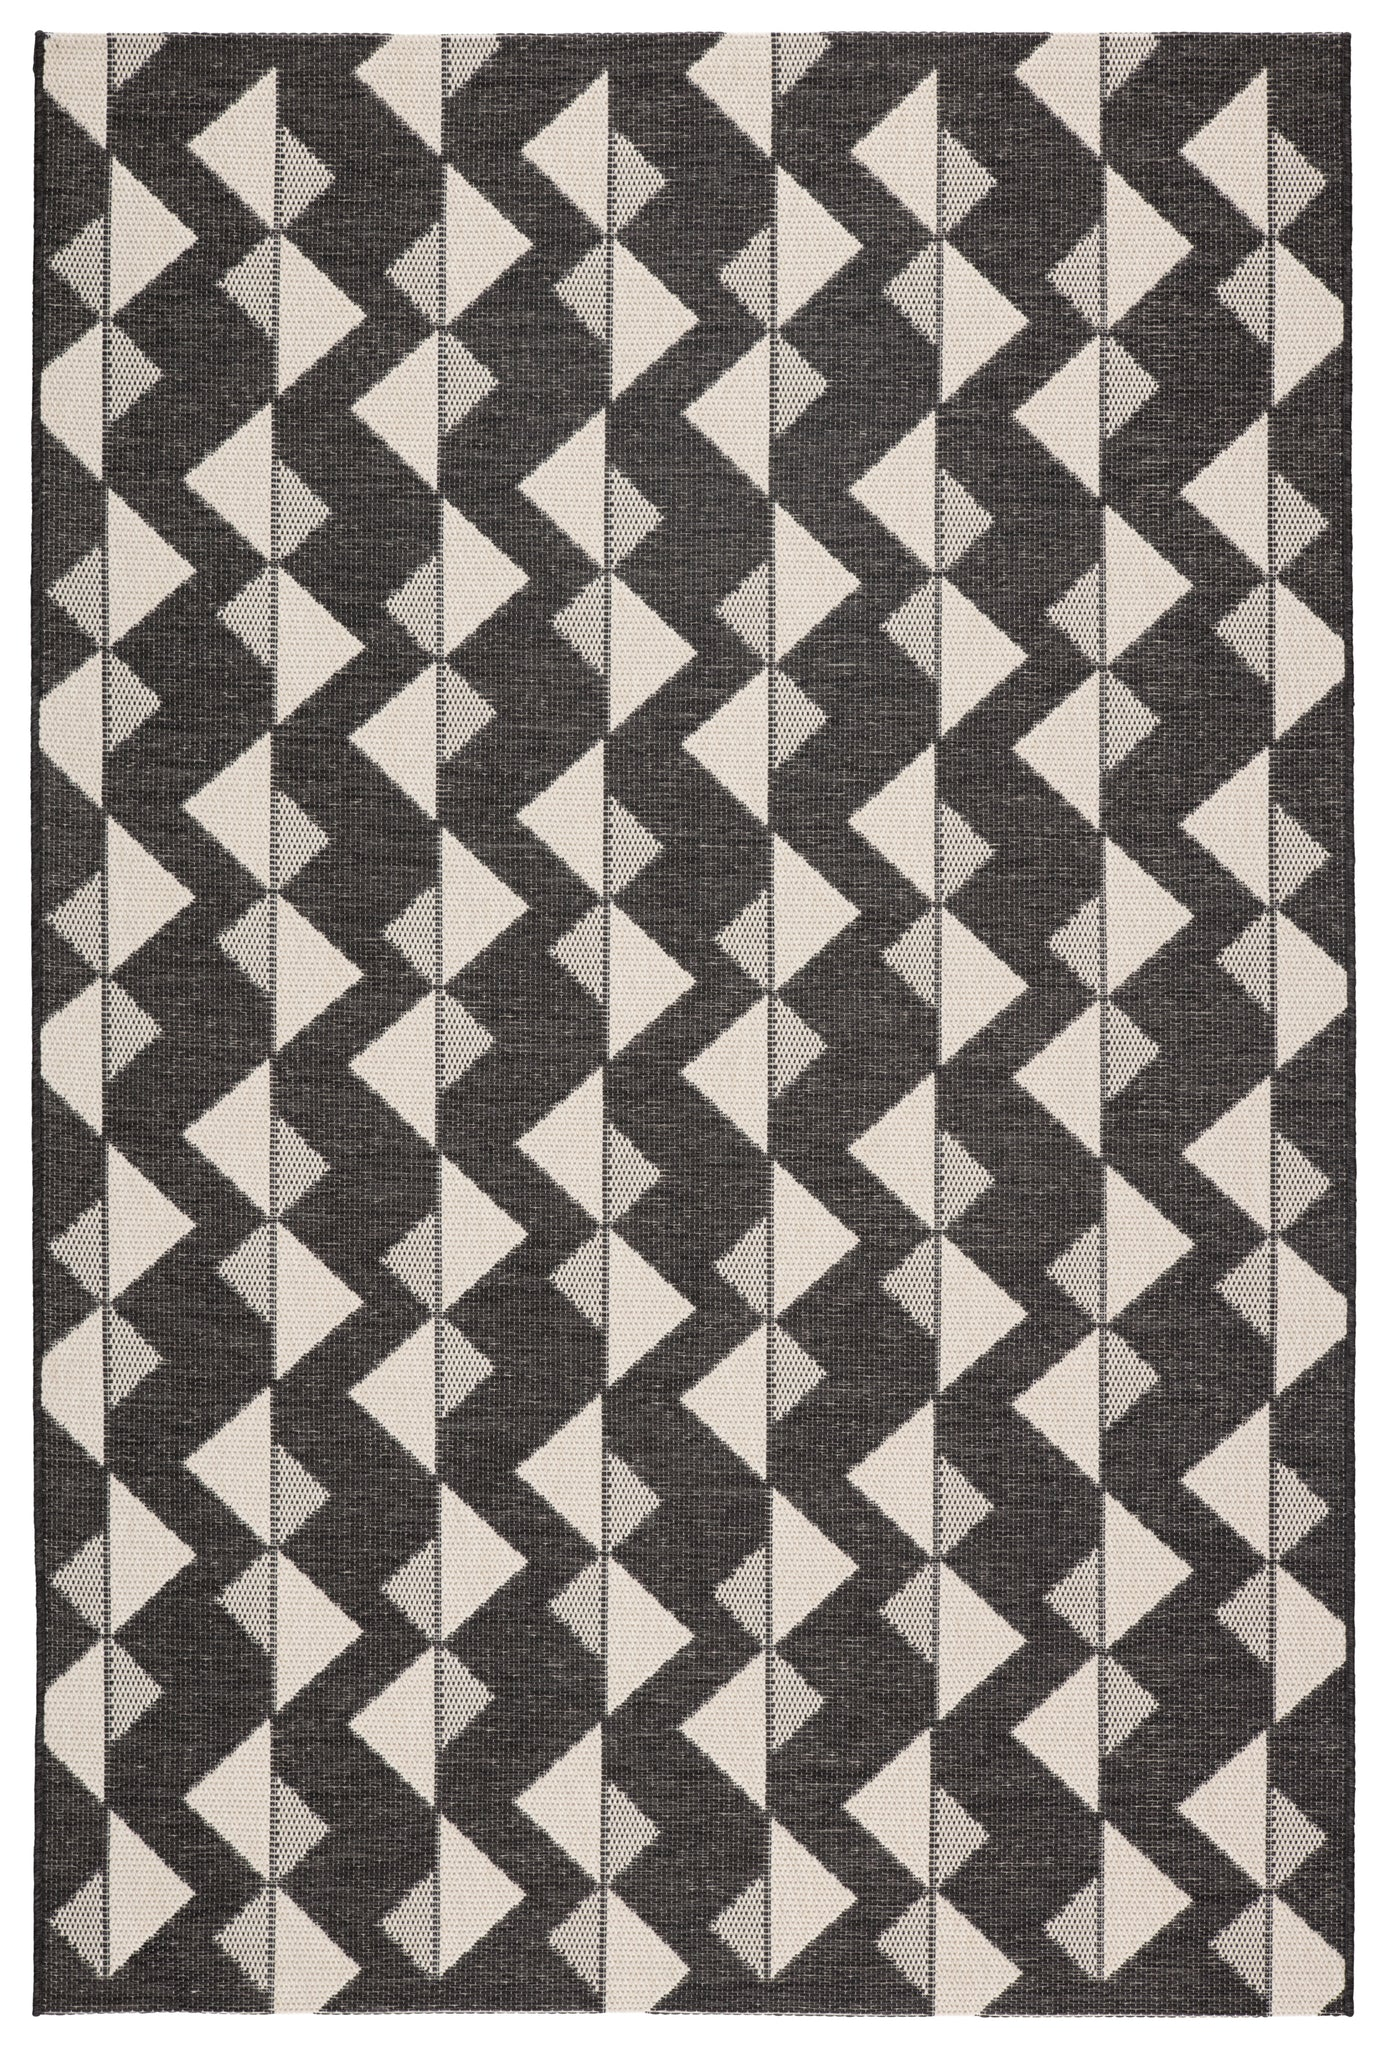 Zemira Indoor Outdoor Geometric Black Cream Rug Burke Decor